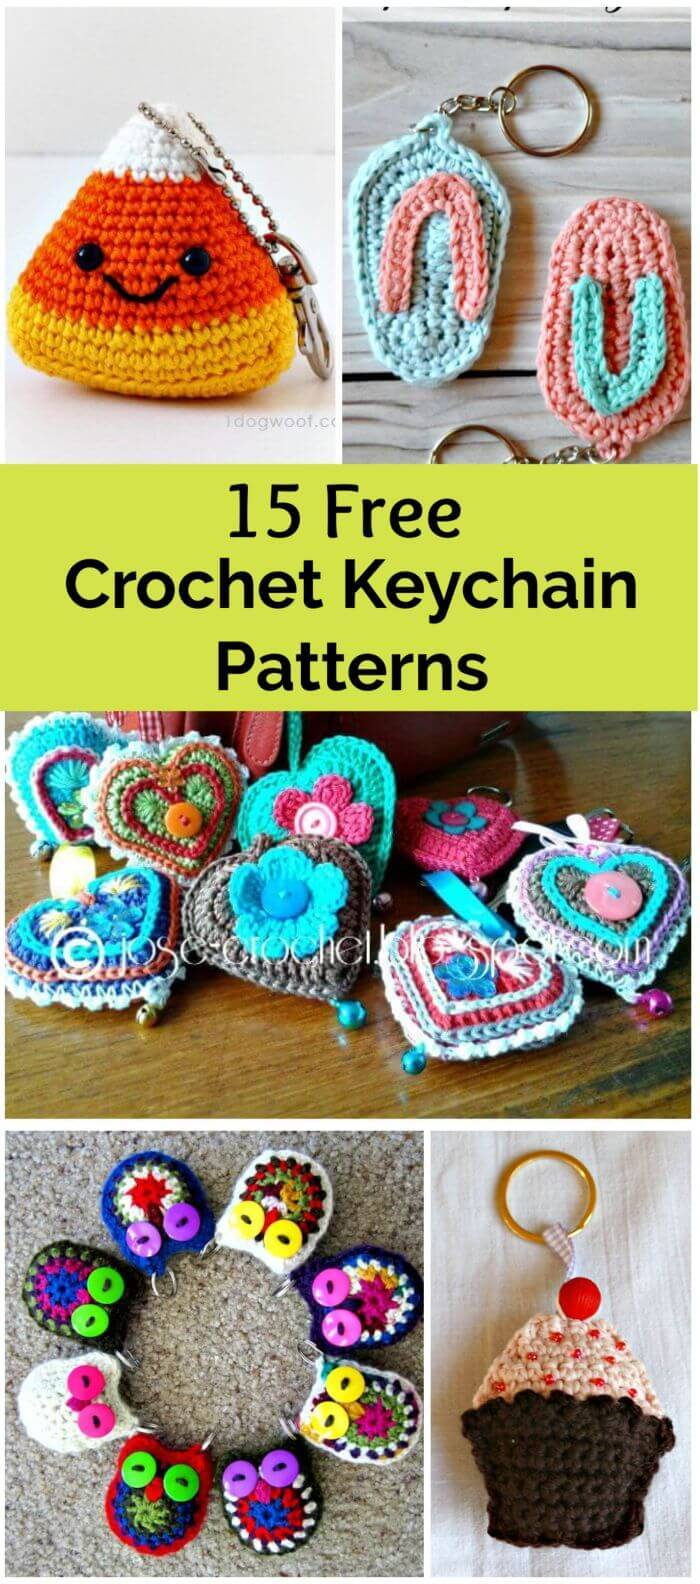 Crochet Keychain 15 Free Crochet Patterns Diy Crafts